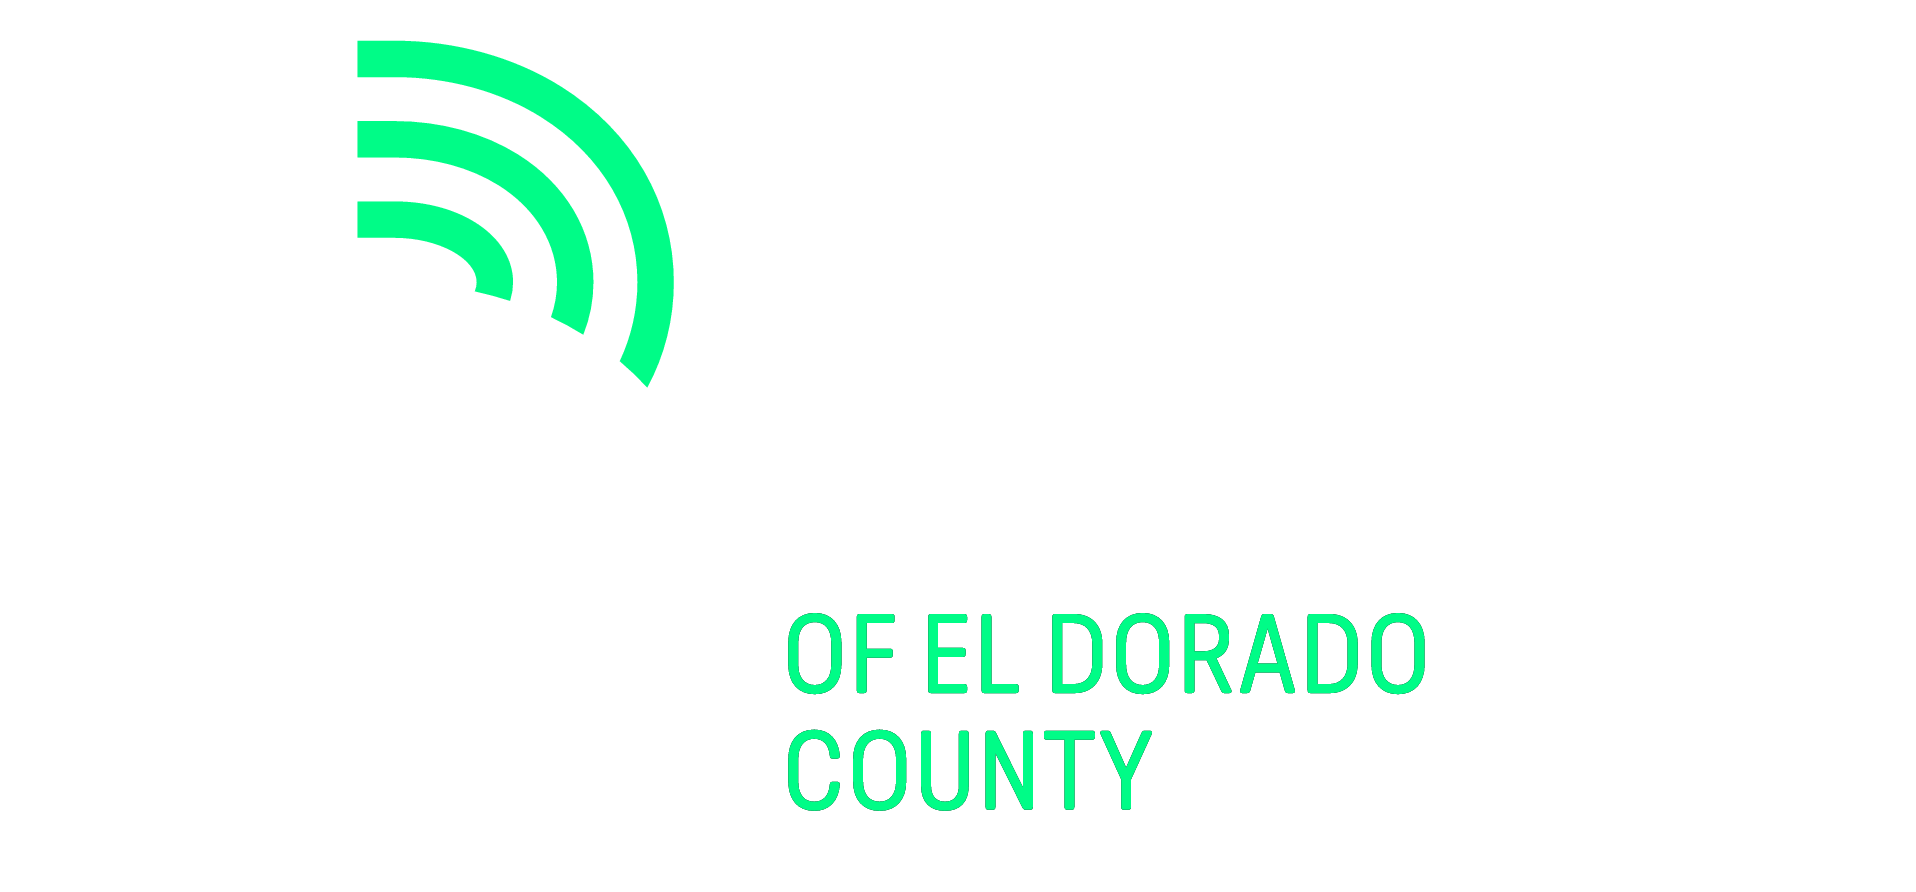 Big Brothers Big Sisters of El Dorado County – Youth Mentoring